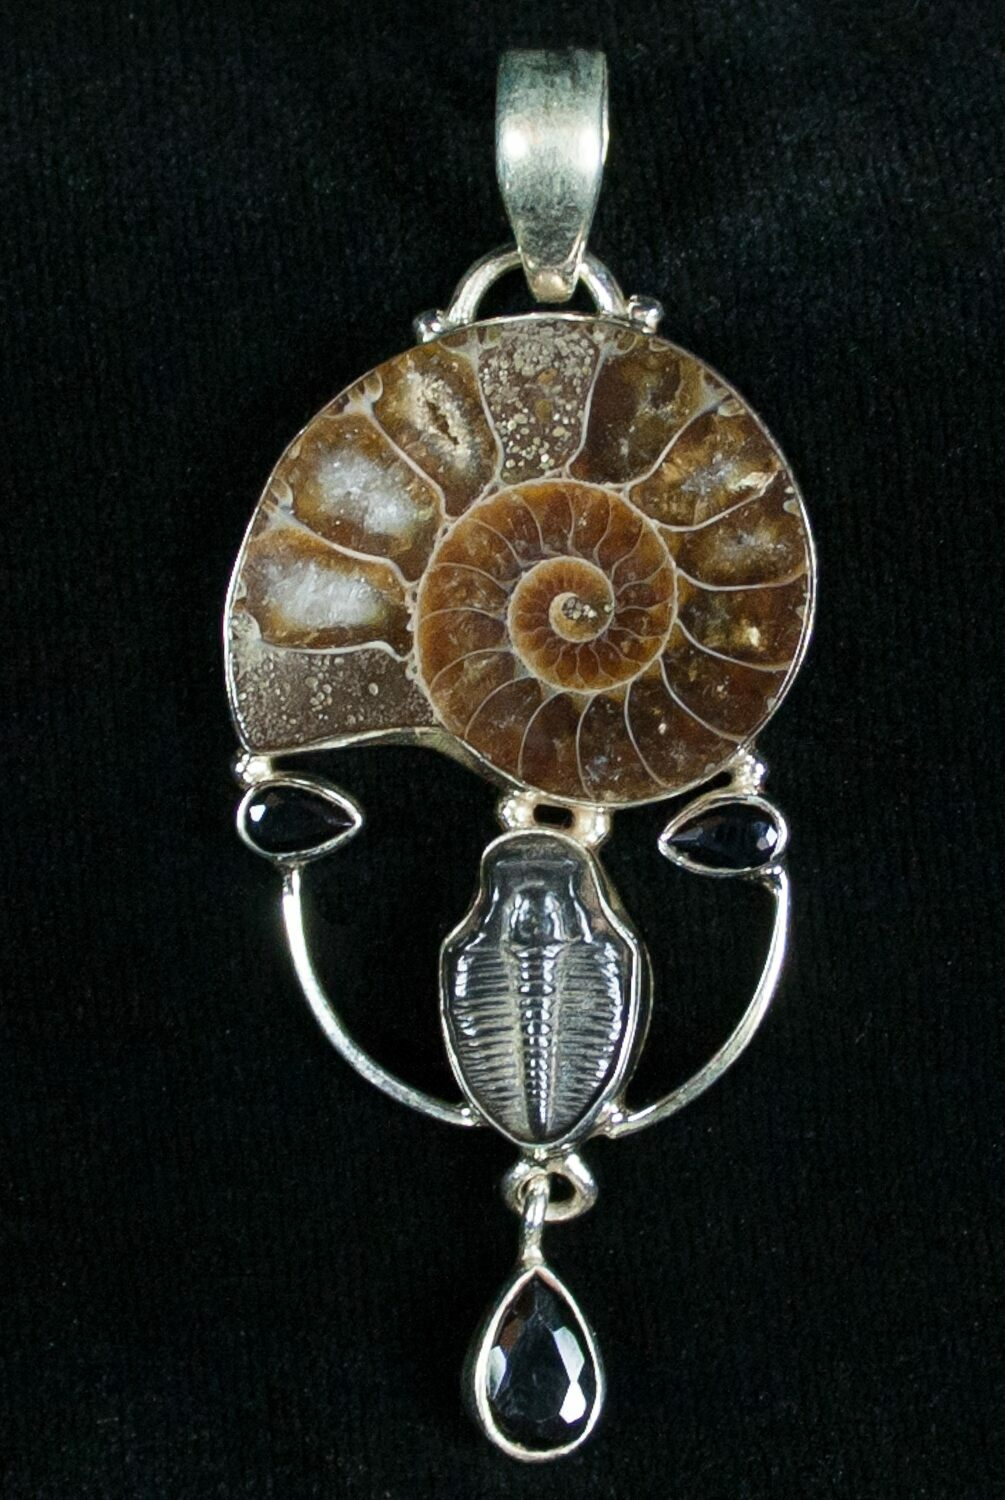 Ammonite trilobite pendant sterling silver for sale 7047 ammonite trilobite pendant sterling silver mozeypictures Image collections